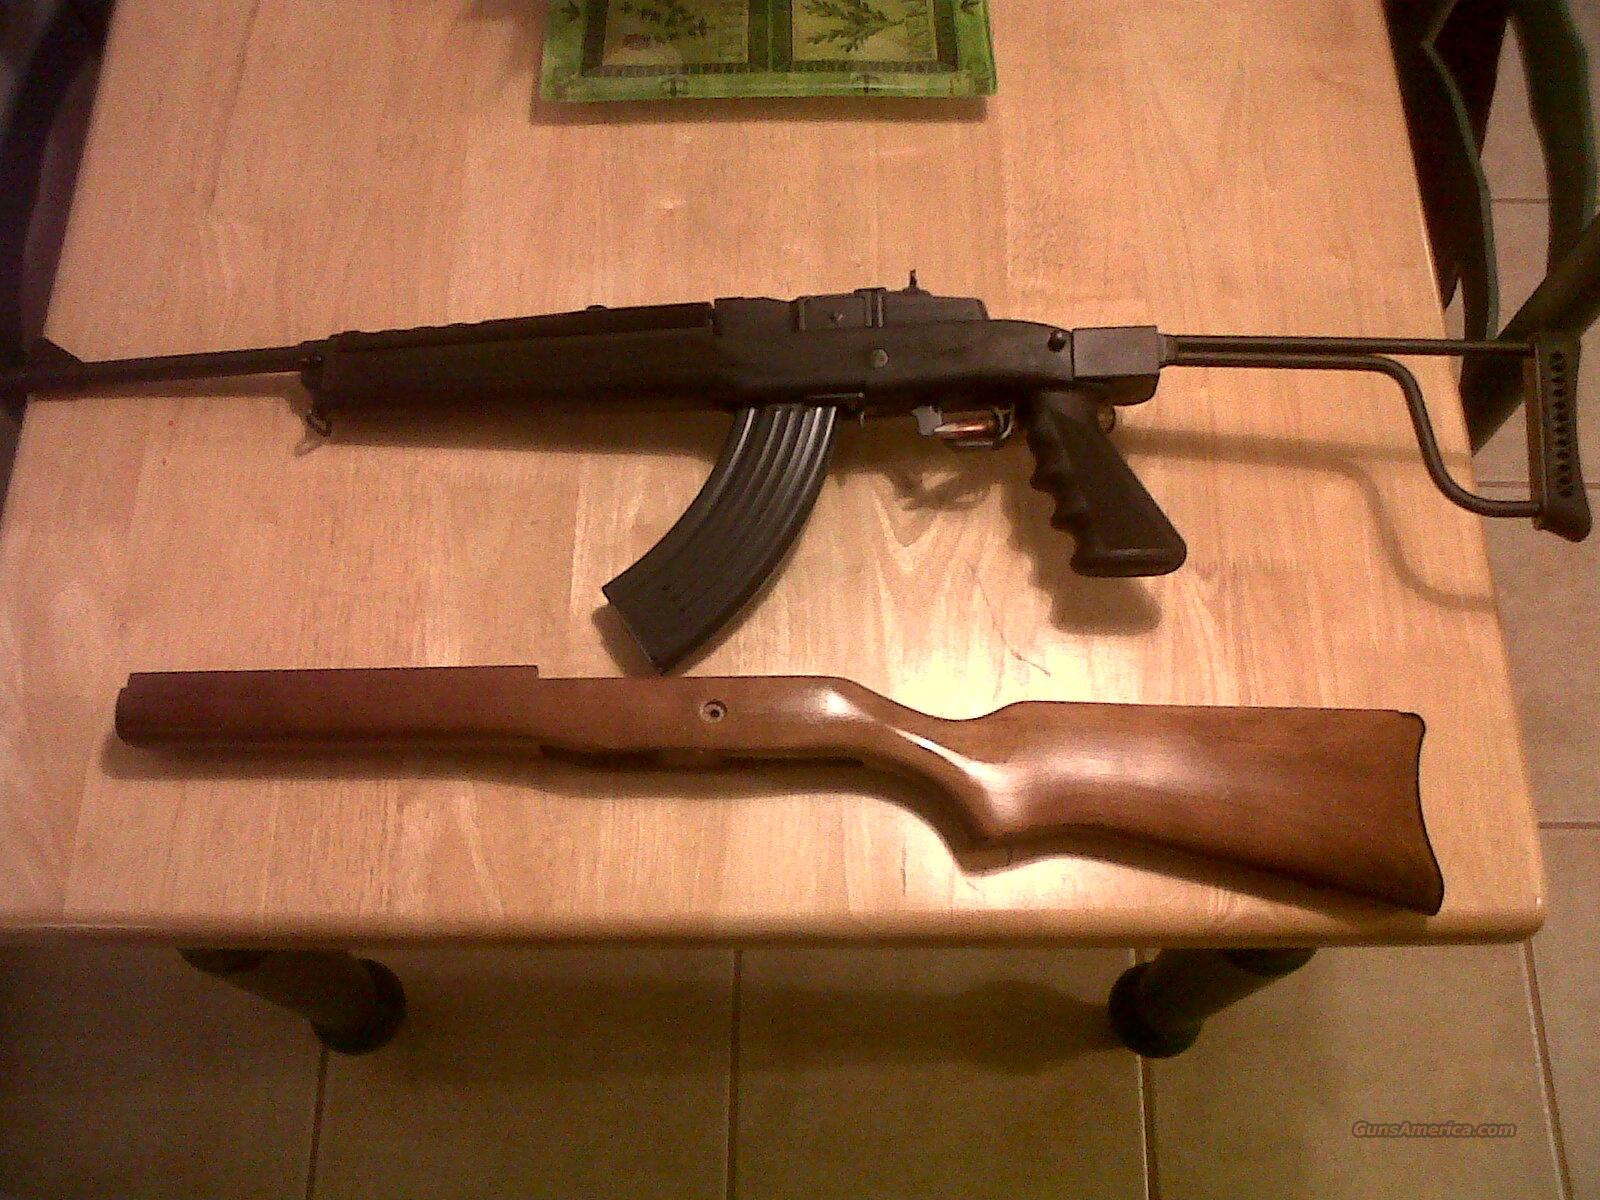 Mini 14 wood stock - Lookup BeforeBuying